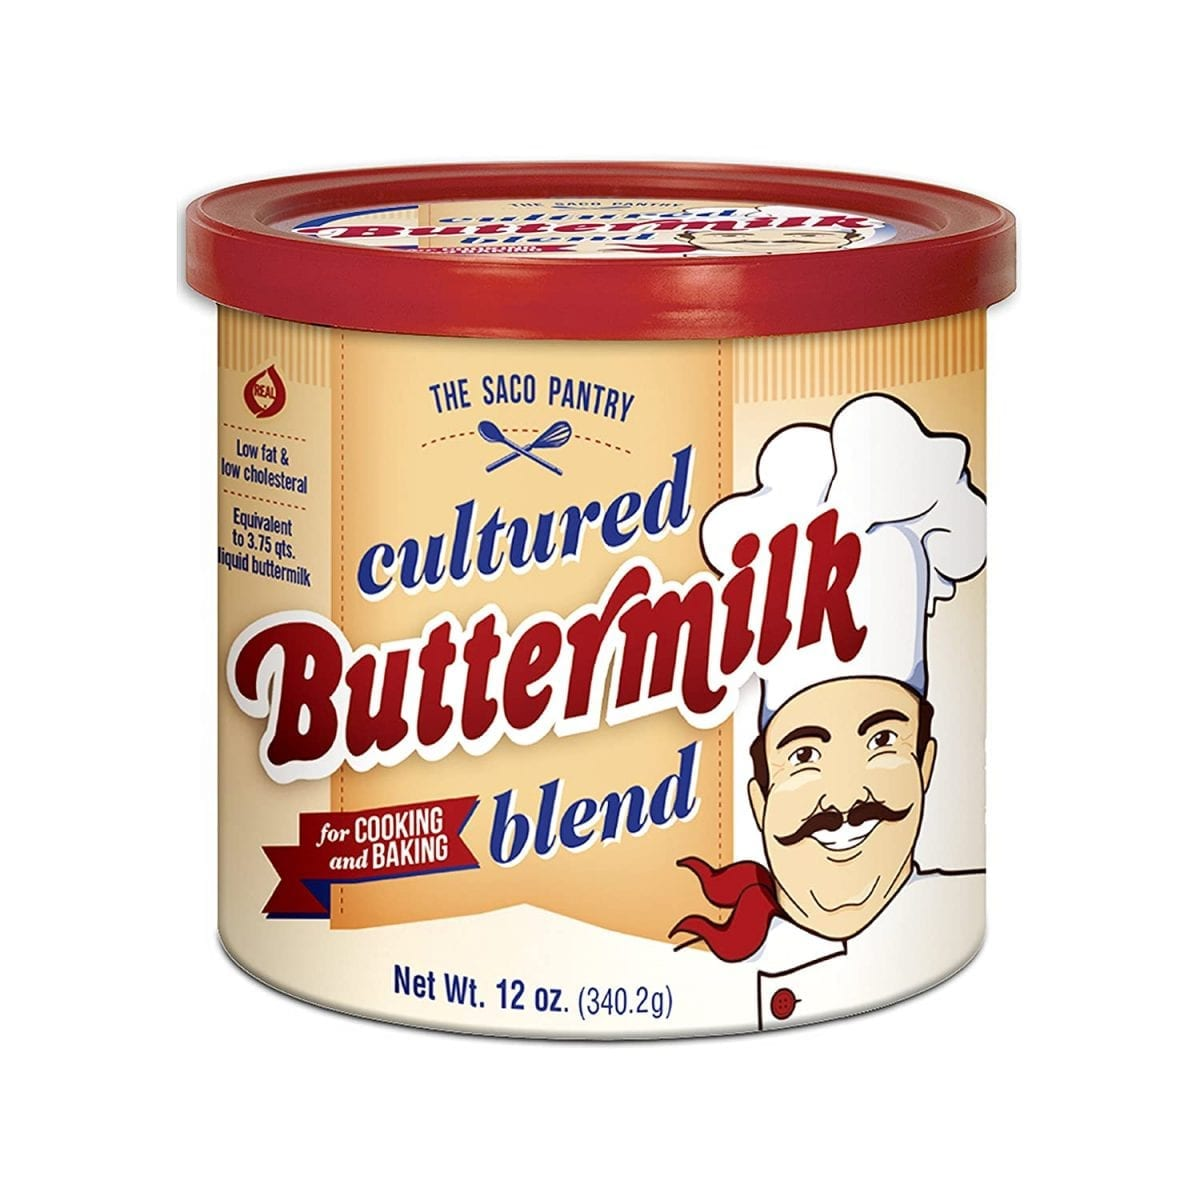 Saco Cultured Buttermilk Powder for Cooking and Baking